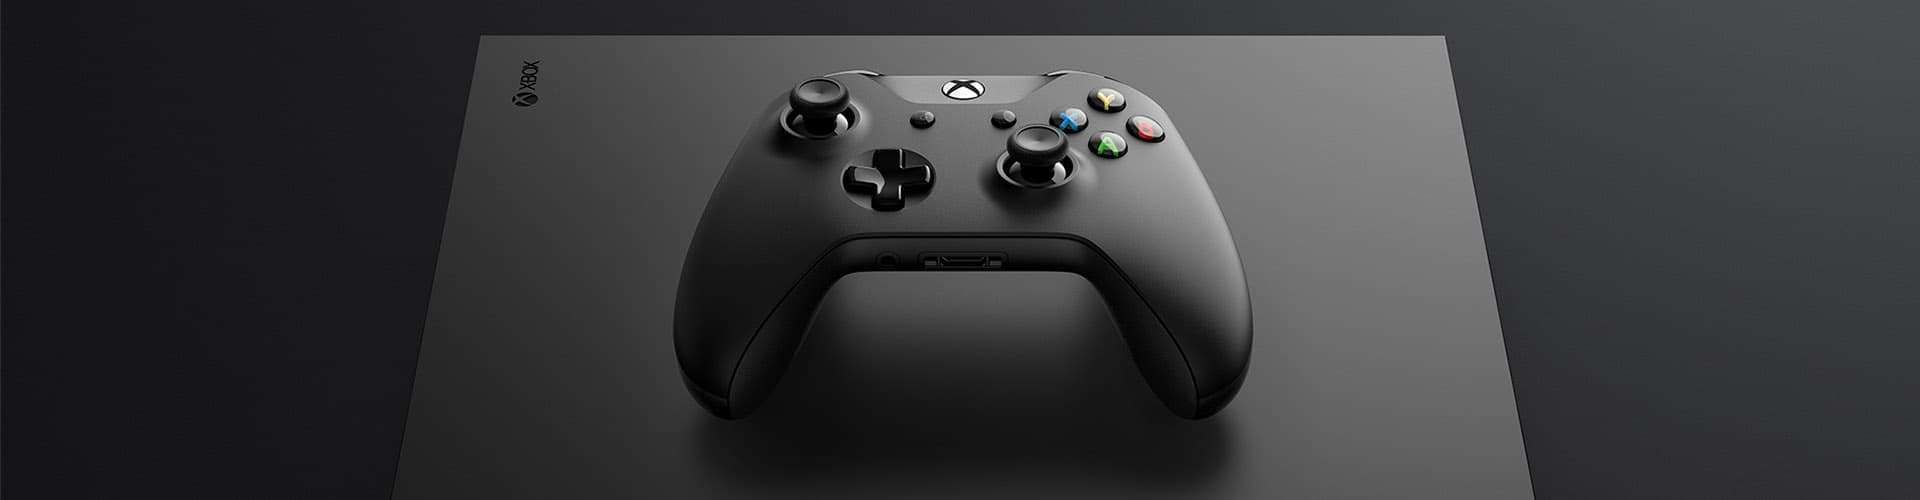 Best XBOX One X Accessories 2018 – The Complete Accessories Buying Guide For XBOX One X